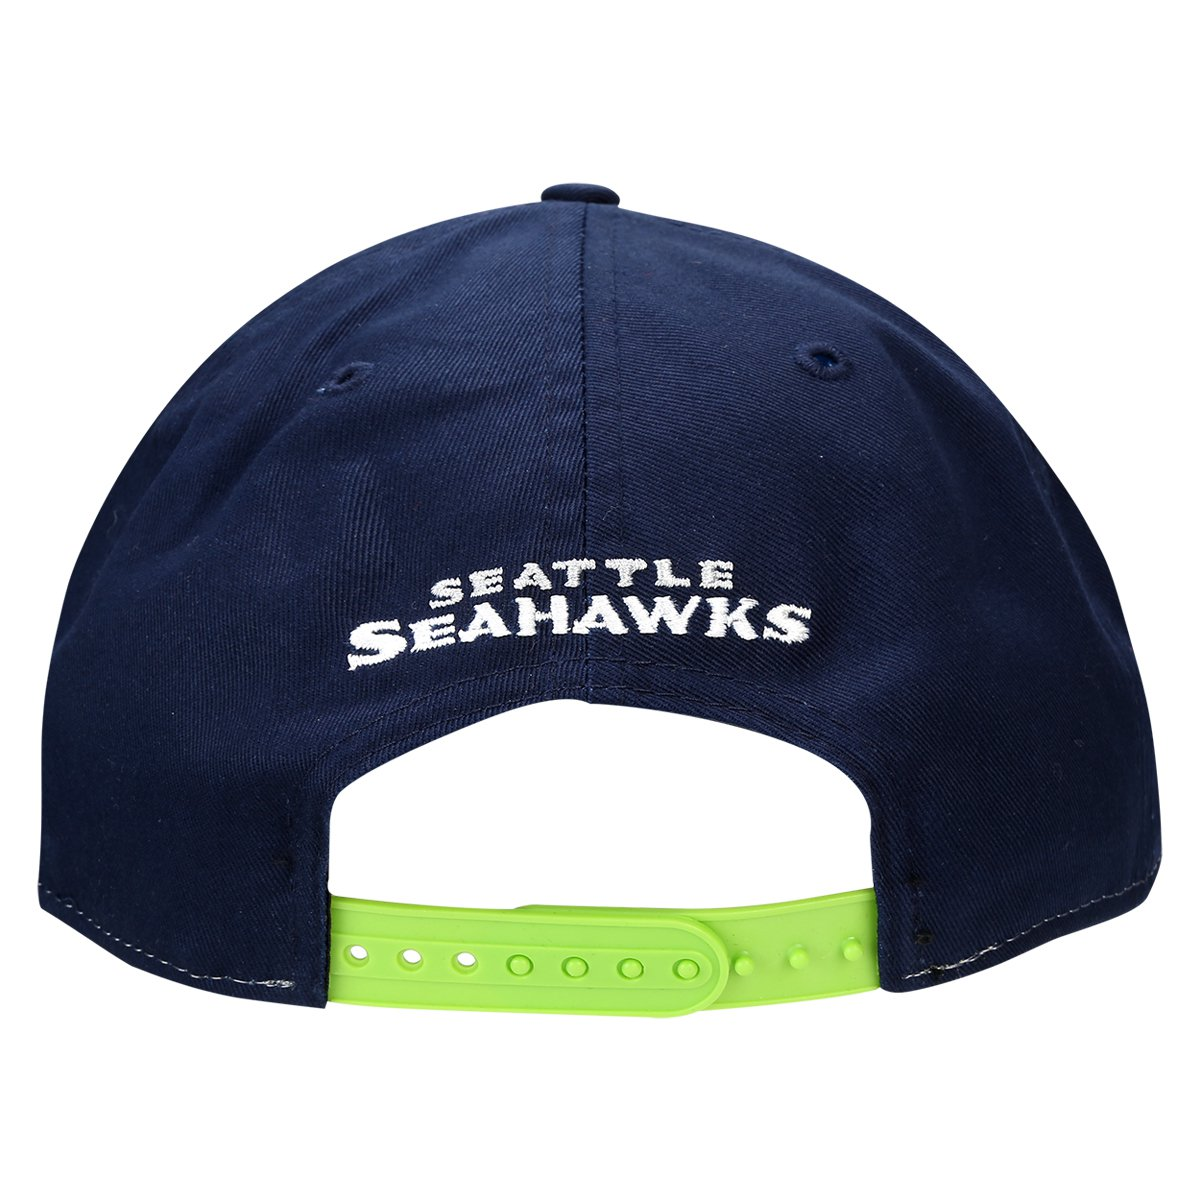 8cf8bcf188 Boné New Era NFL 950 Draft Colletion Seattle Seahawks - Compre Agora ...